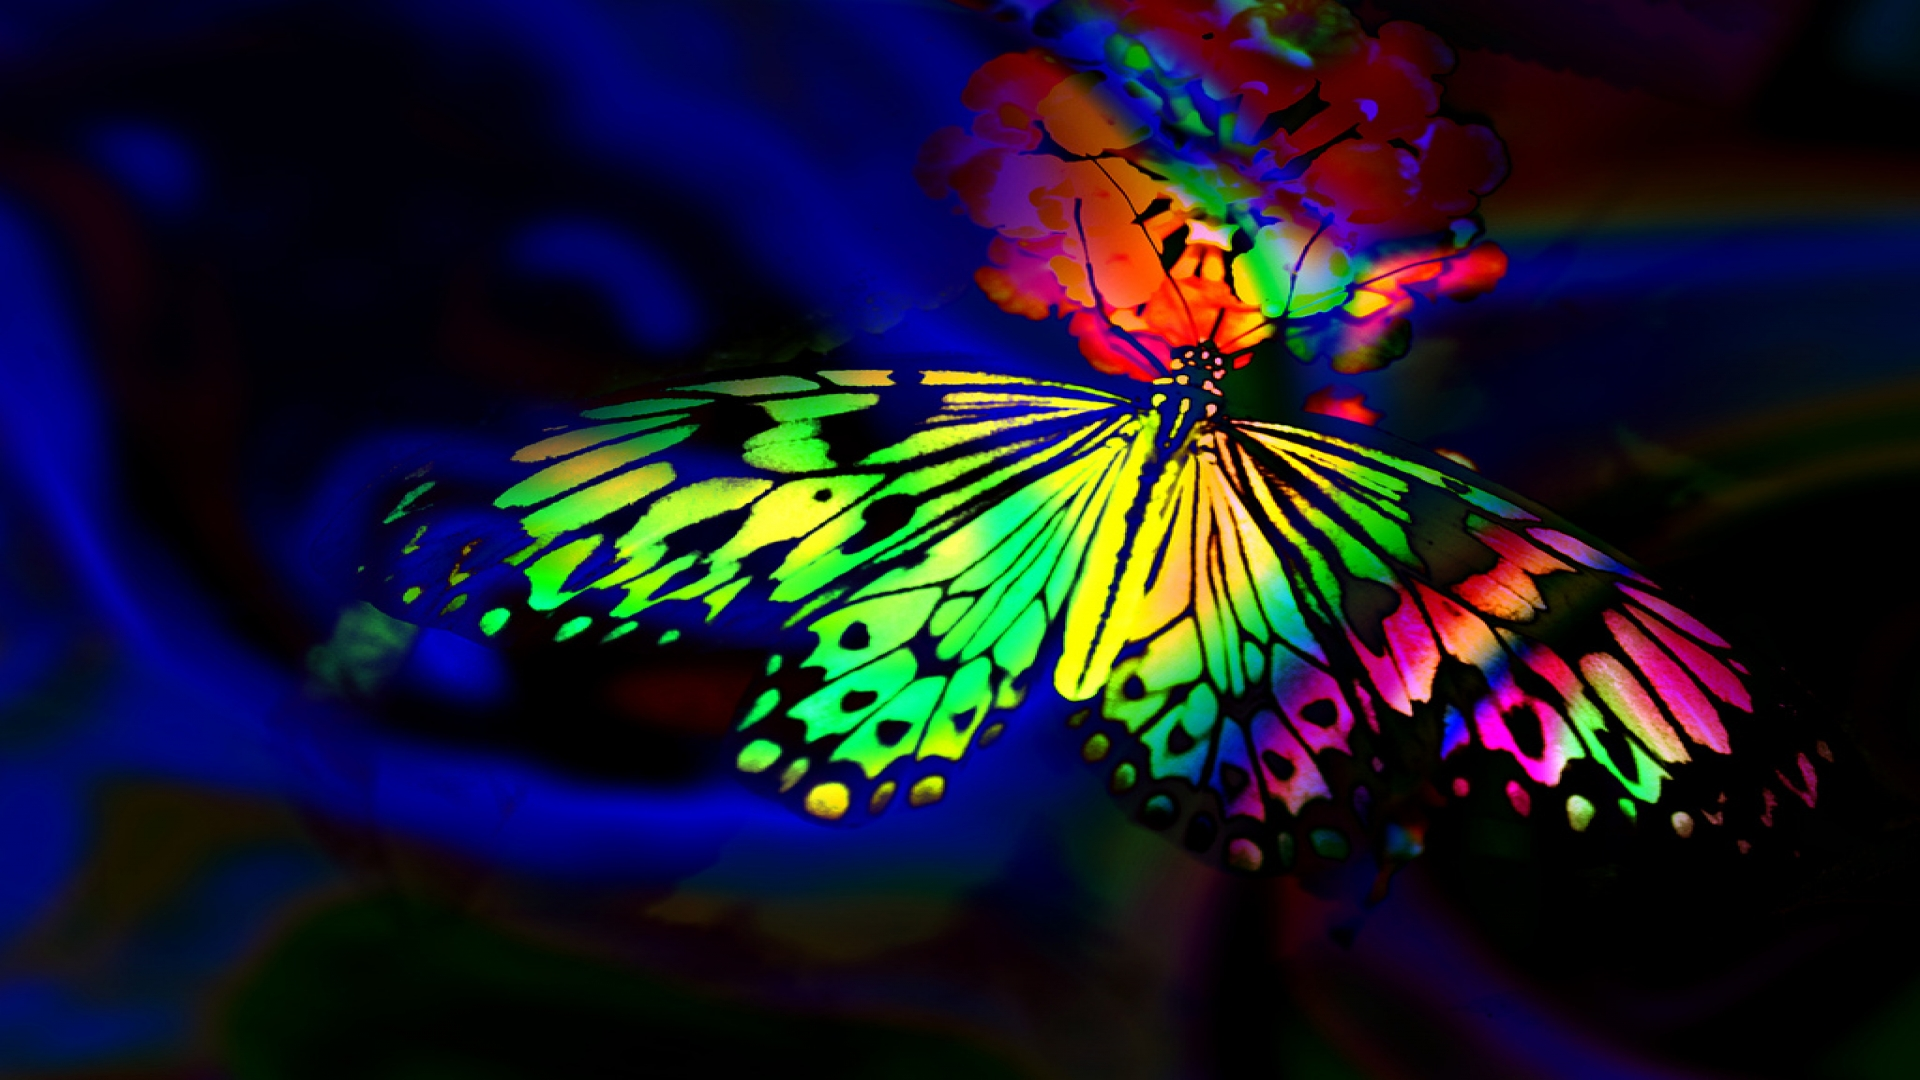 Butterfly HD Wallpaper | Background Image | 1920x1080 | ID ...